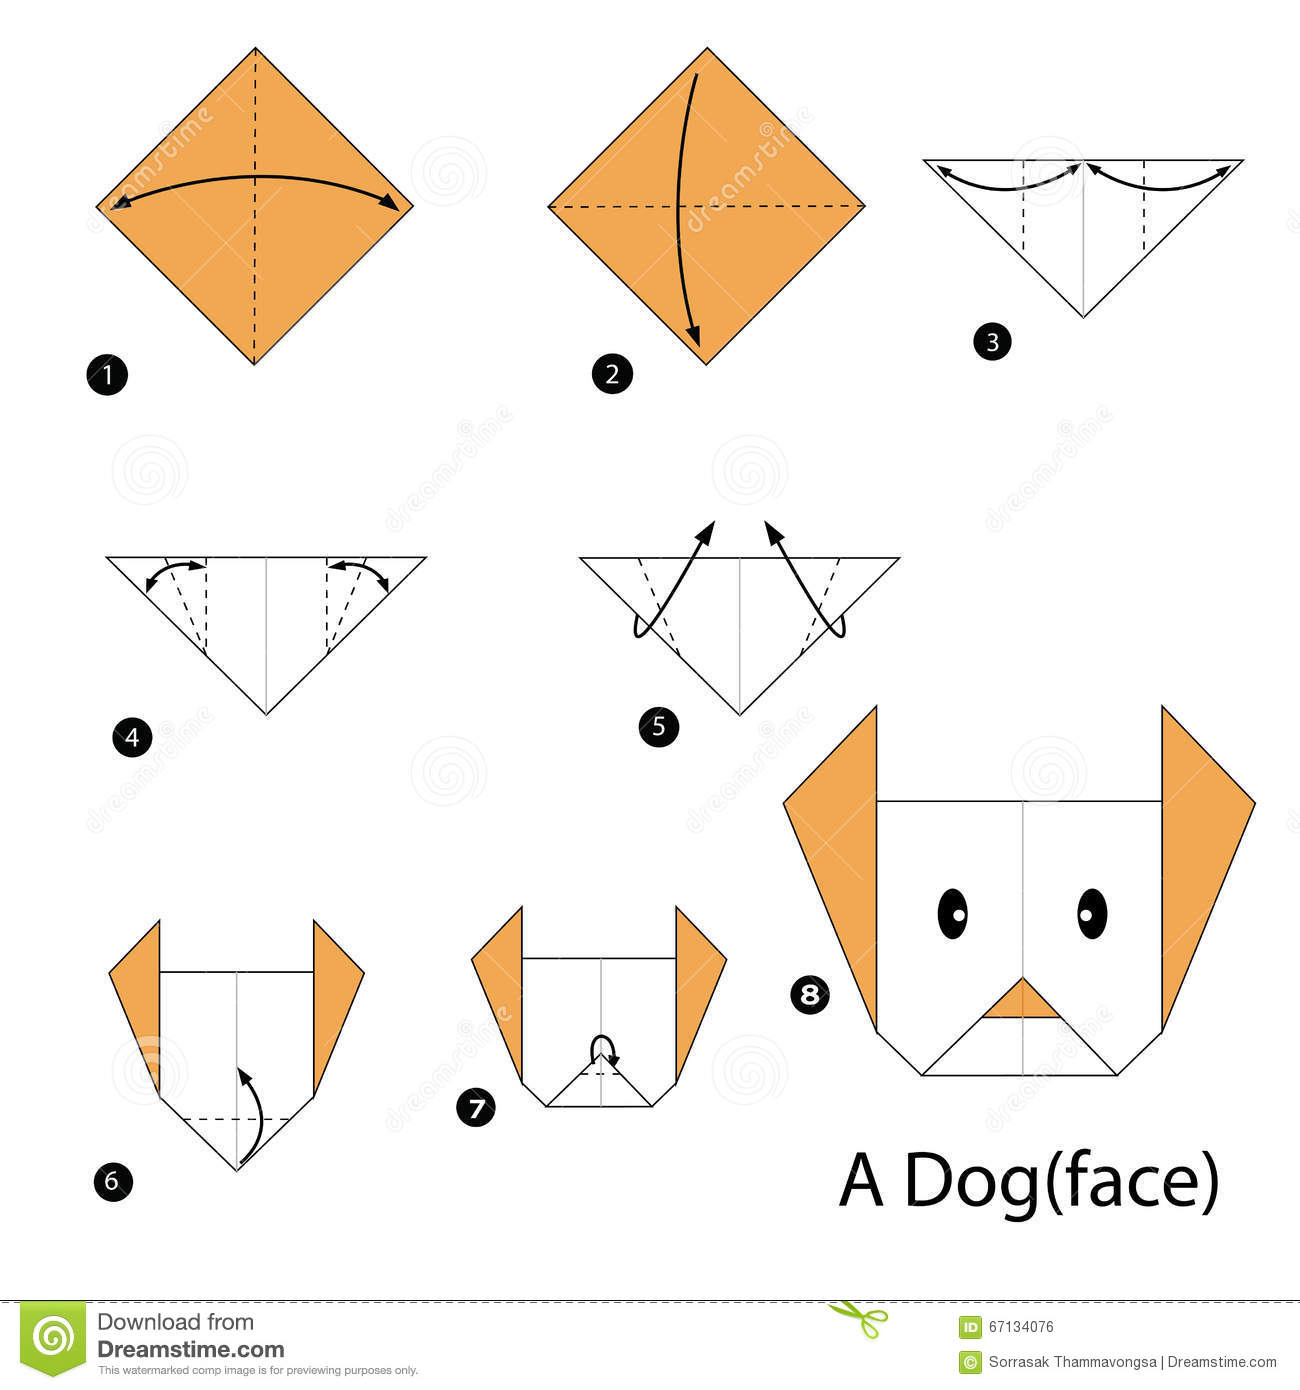 Origami dog face how to origami - Step By Step Instructions How To Make Origami A Dog Royalty Free Stock Image